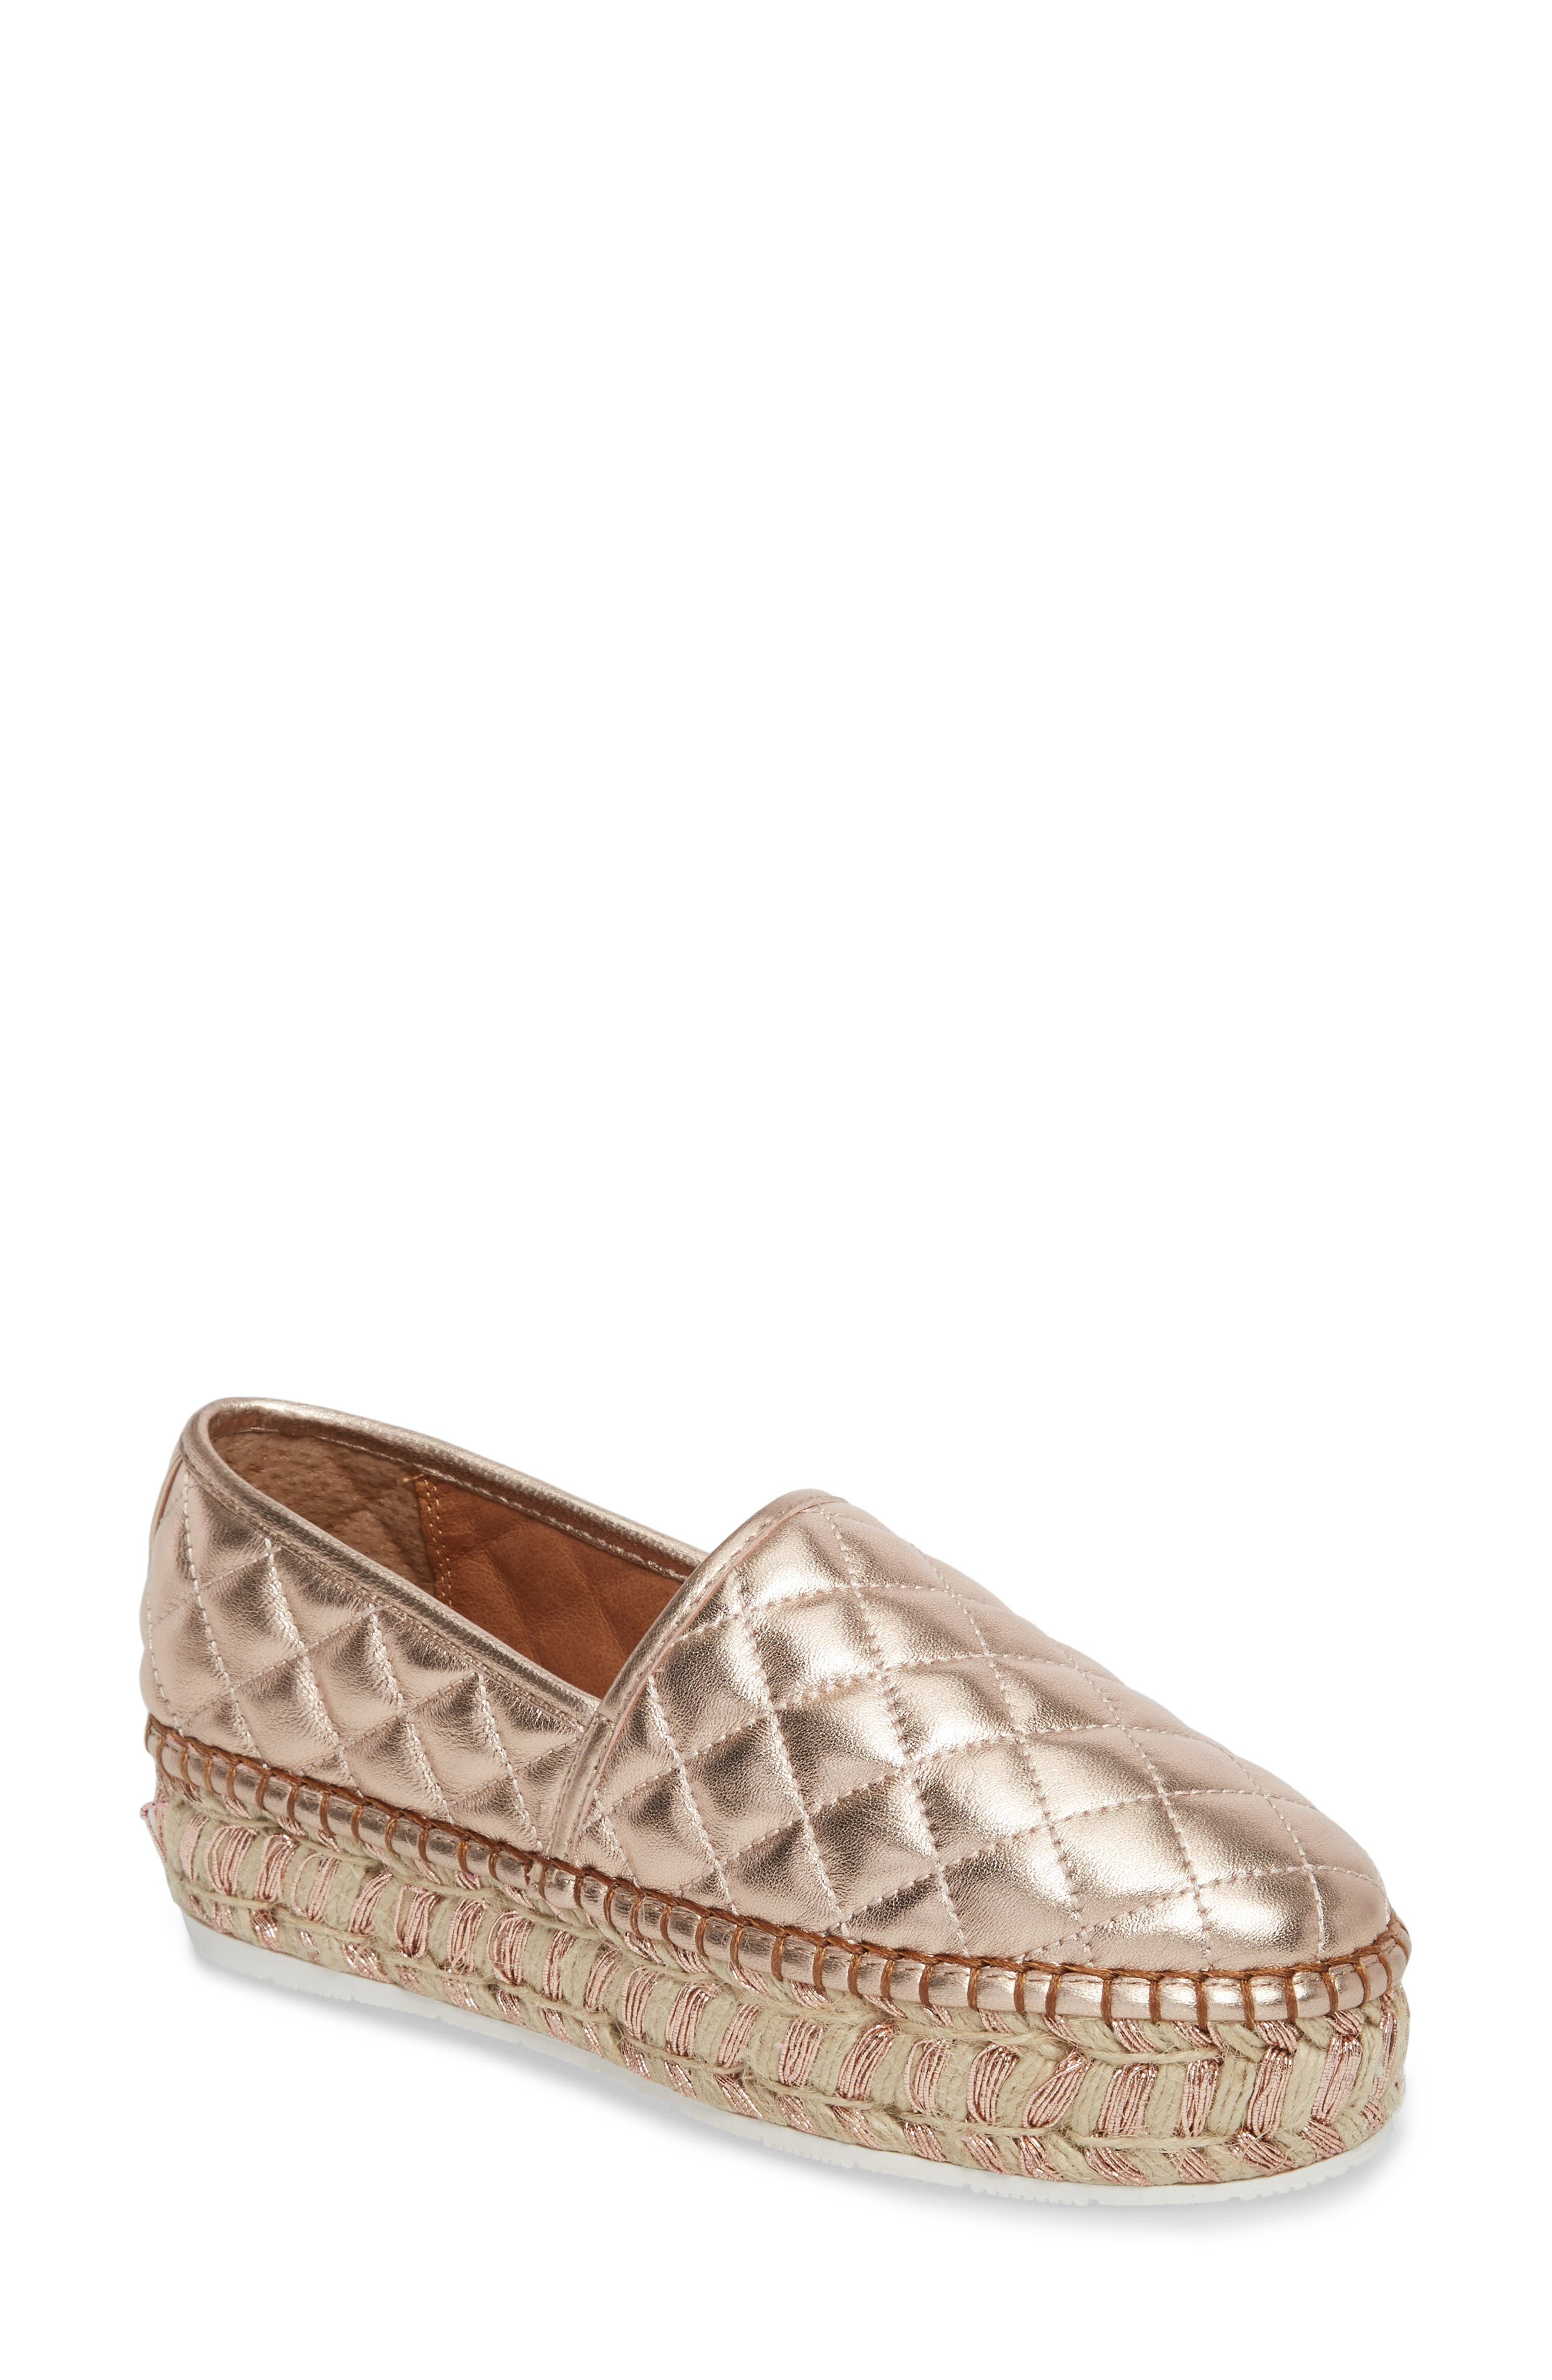 Alternate Image 1 Selected - JSlides Renata Quilted Slip-On Platform Flat (Women)